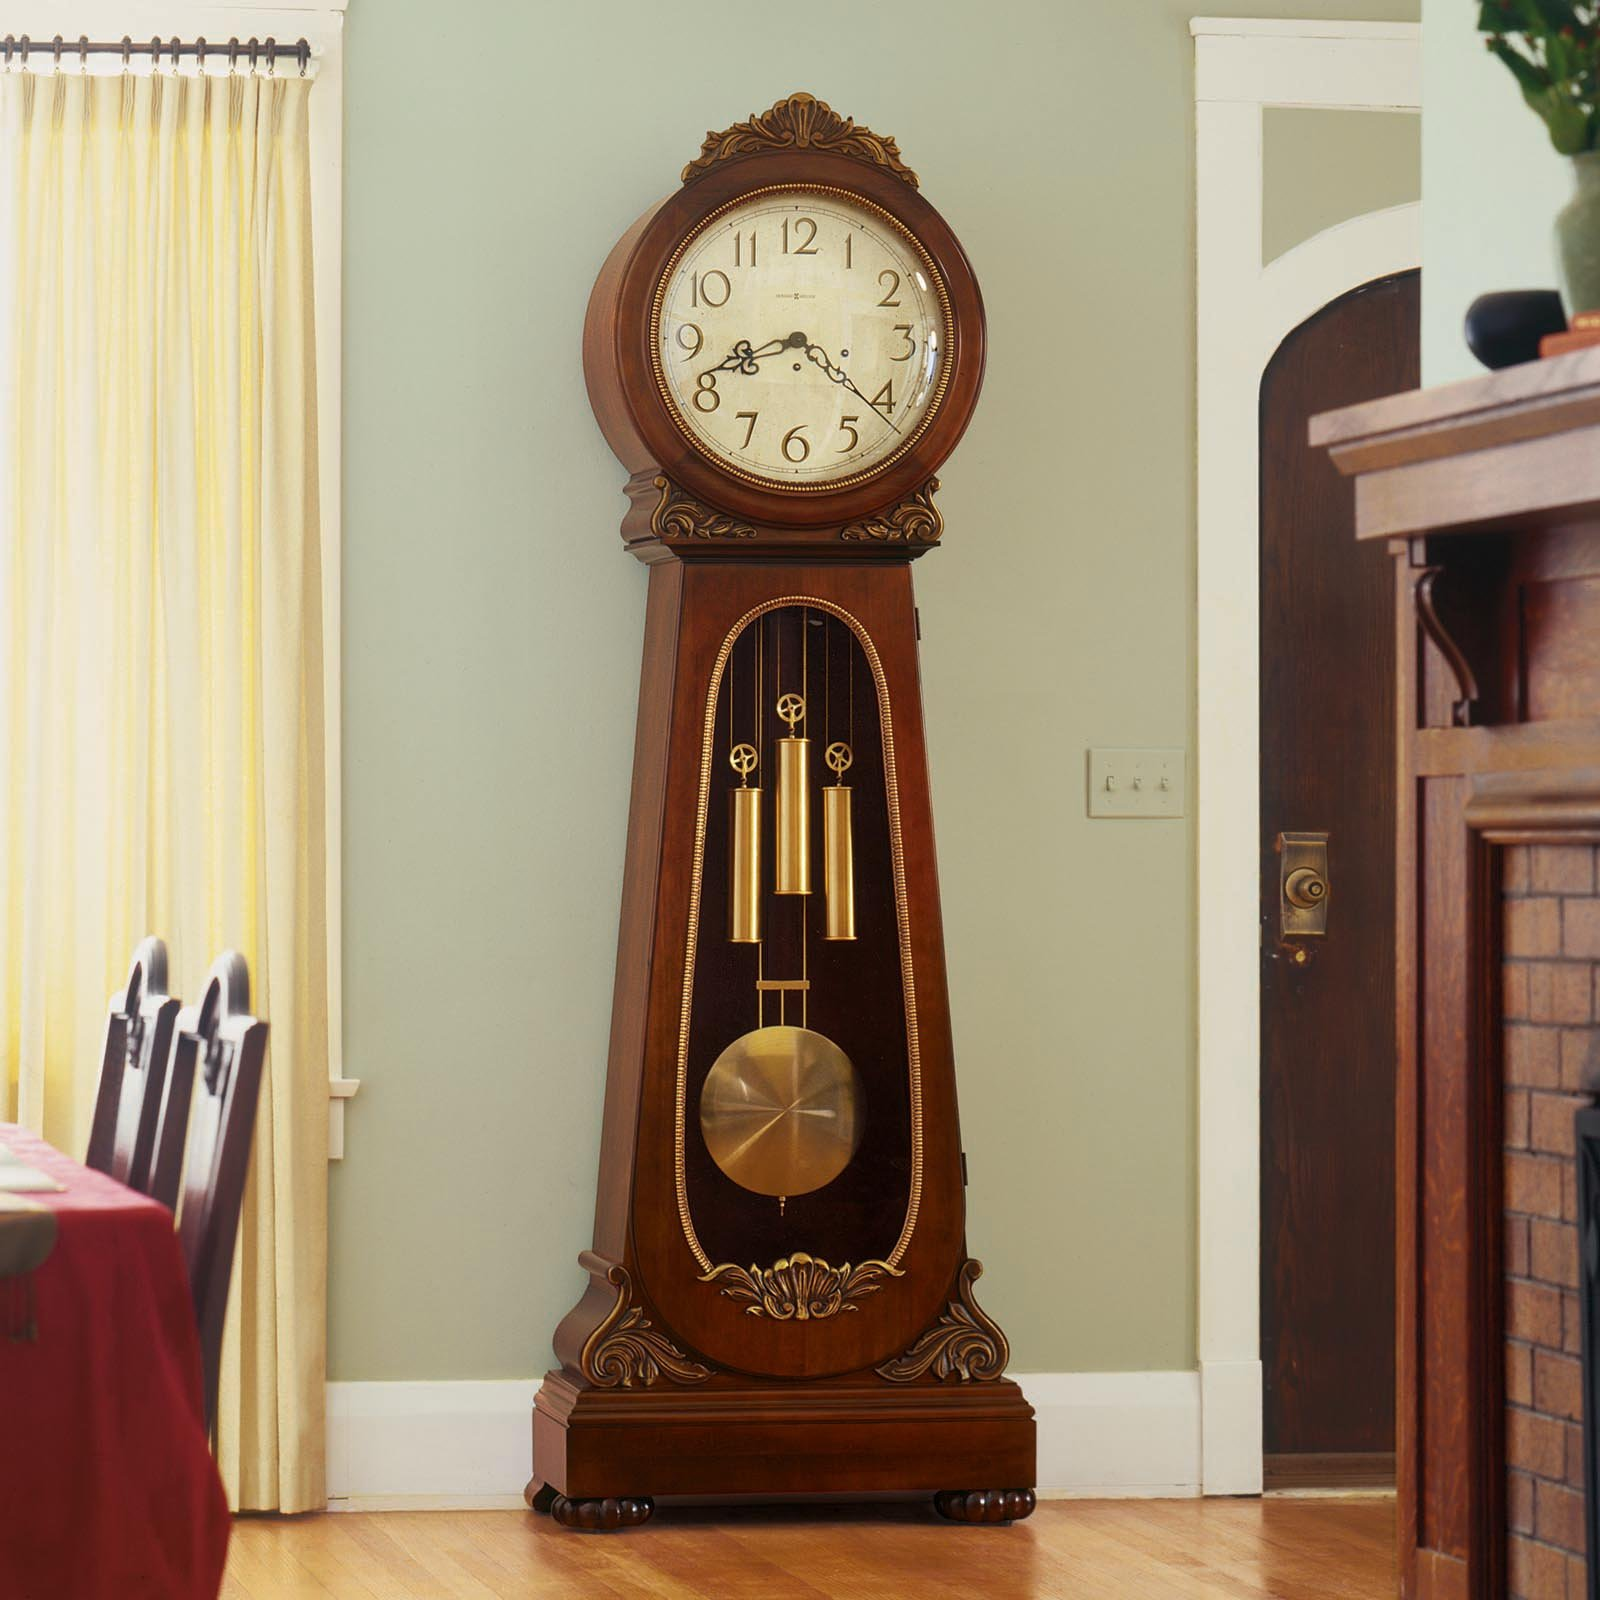 skp decoration stl pendel models model clock ps fbx architectural floor cgtrader max obj floors